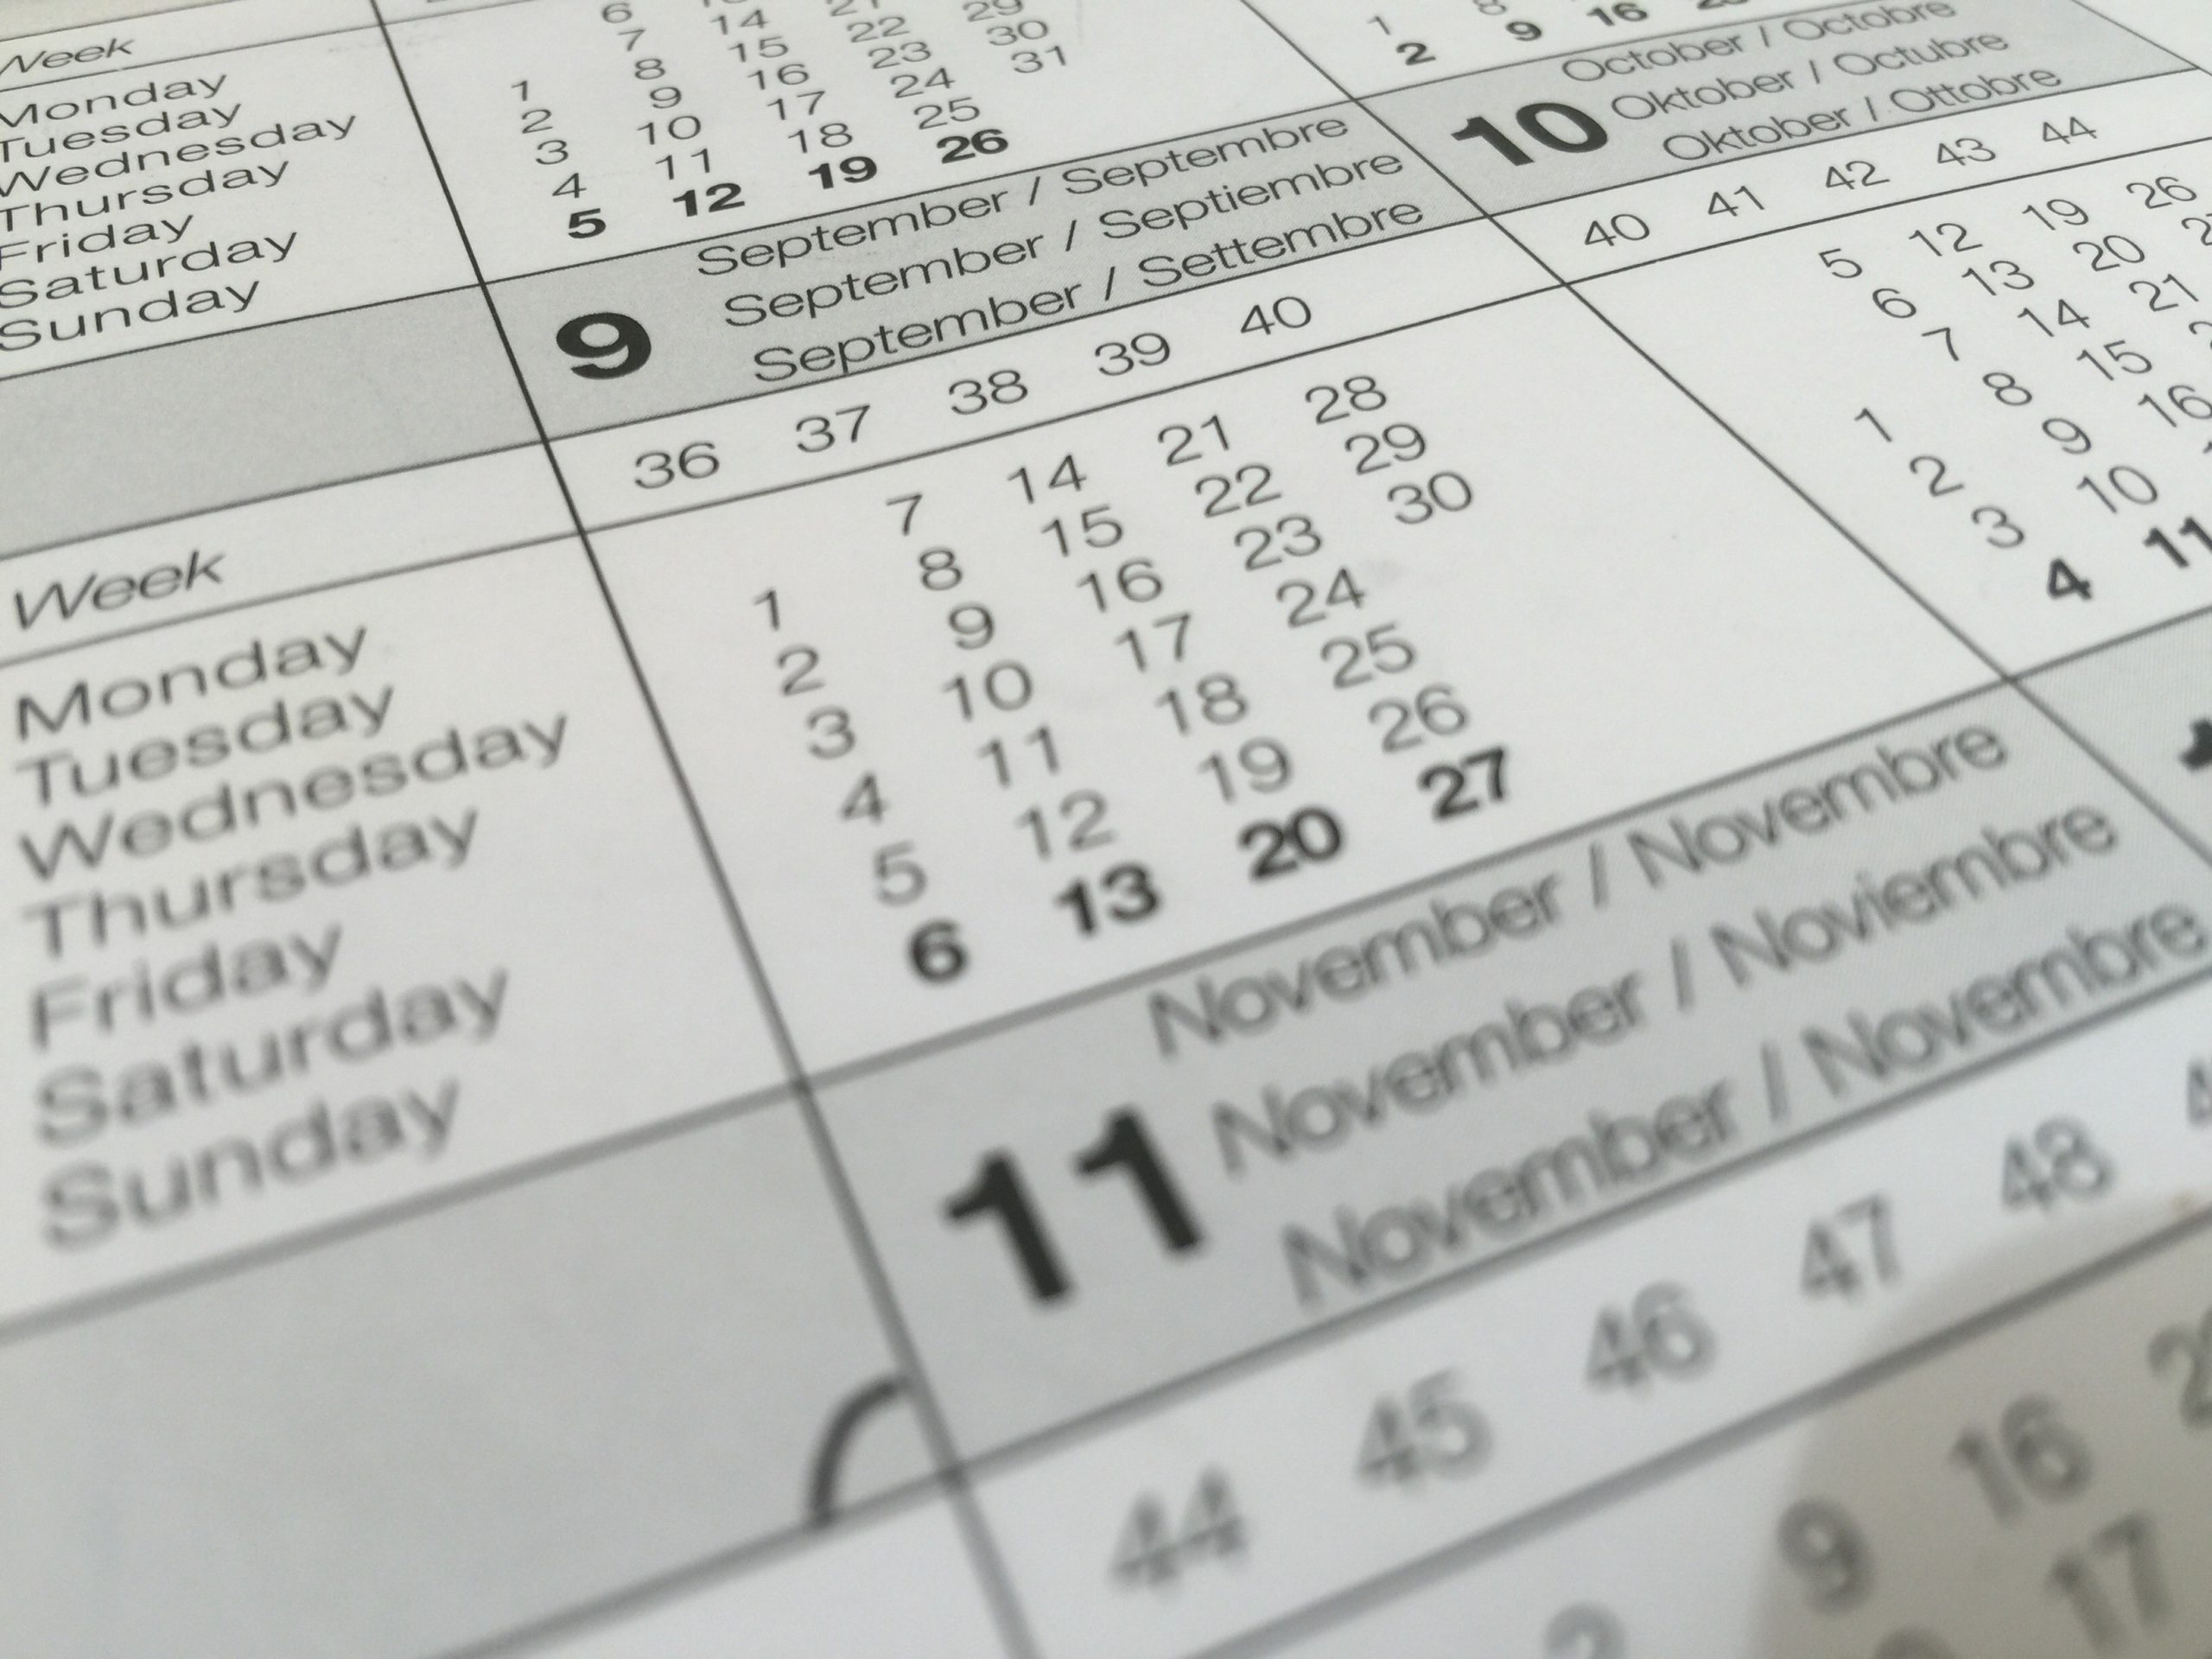 calendar-dates-paper-schedule-273153-scaled.jpg